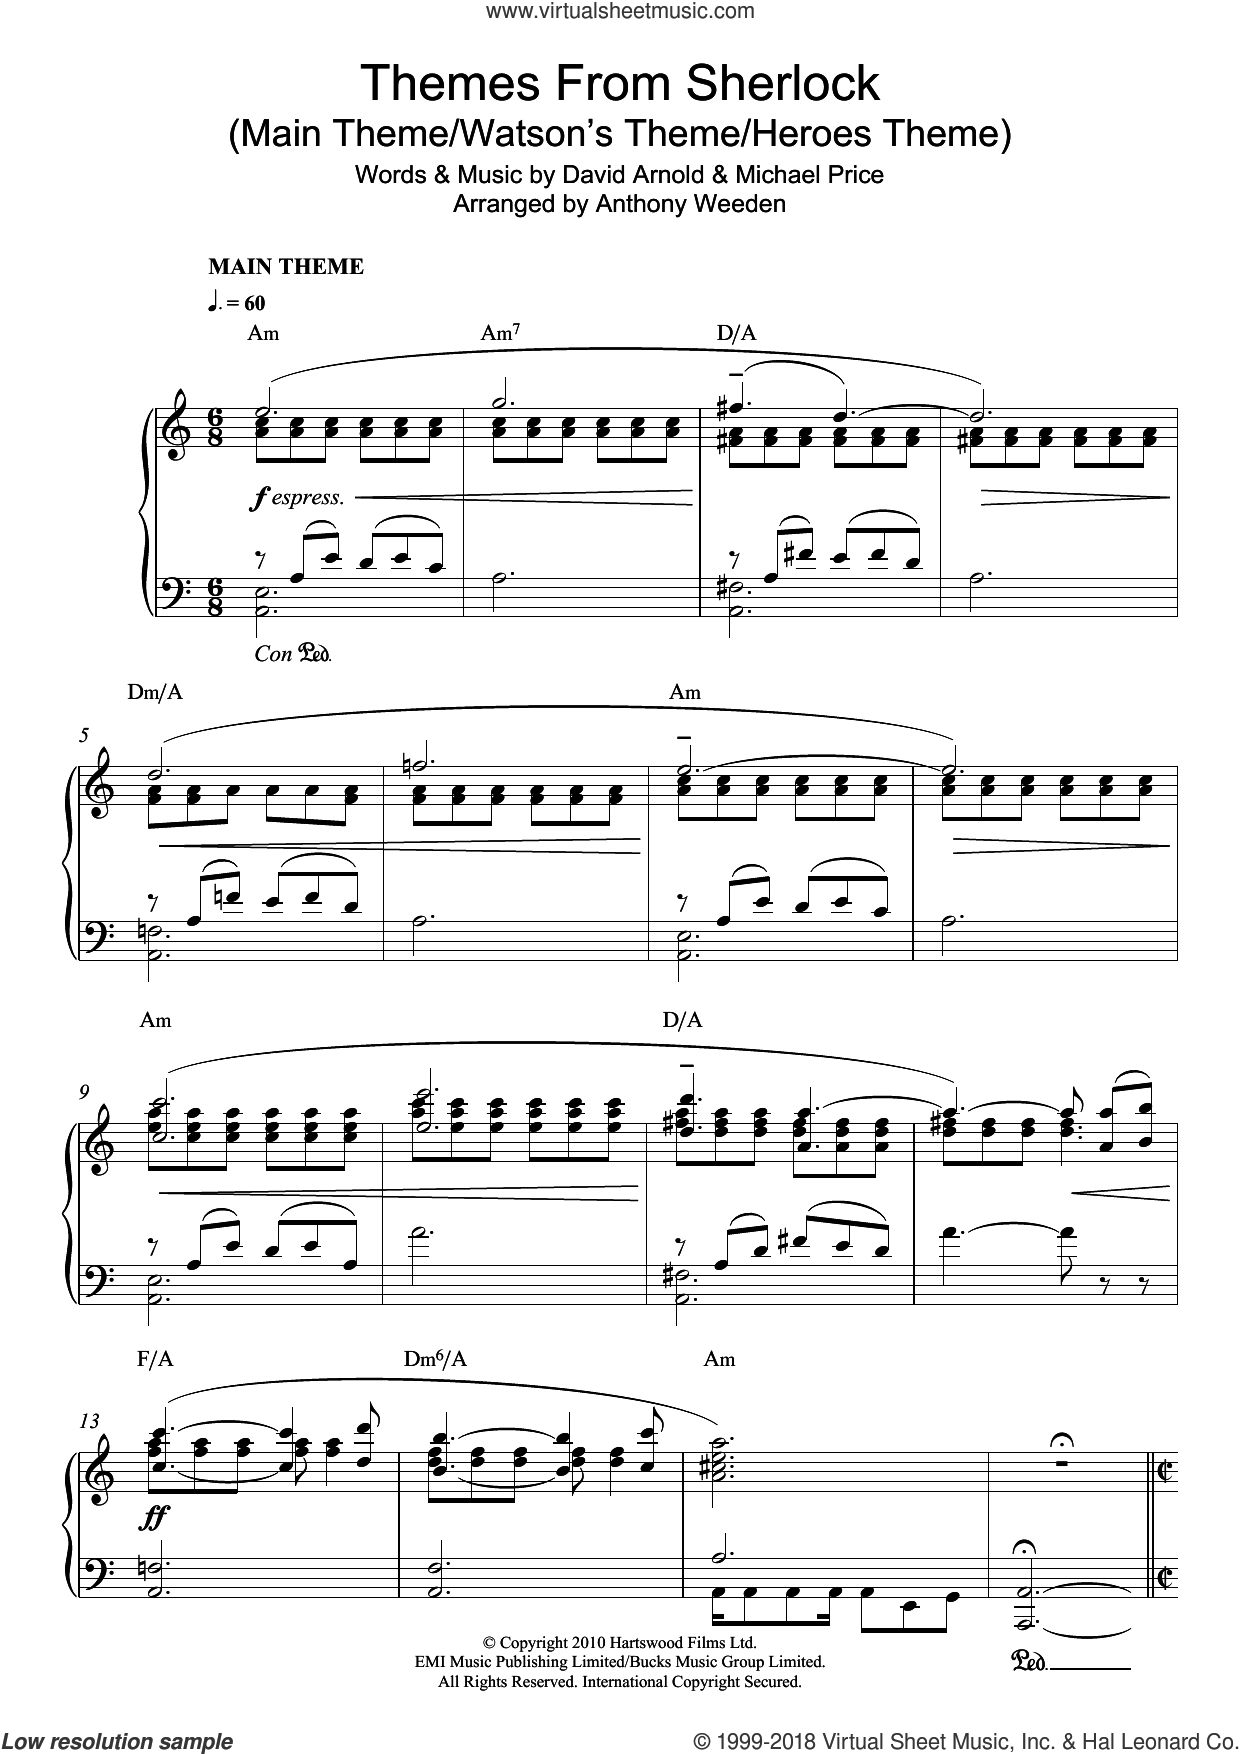 Themes From Sherlock (Main Theme/Watson's Theme/Heroes Theme) sheet music for piano solo by Michael Price